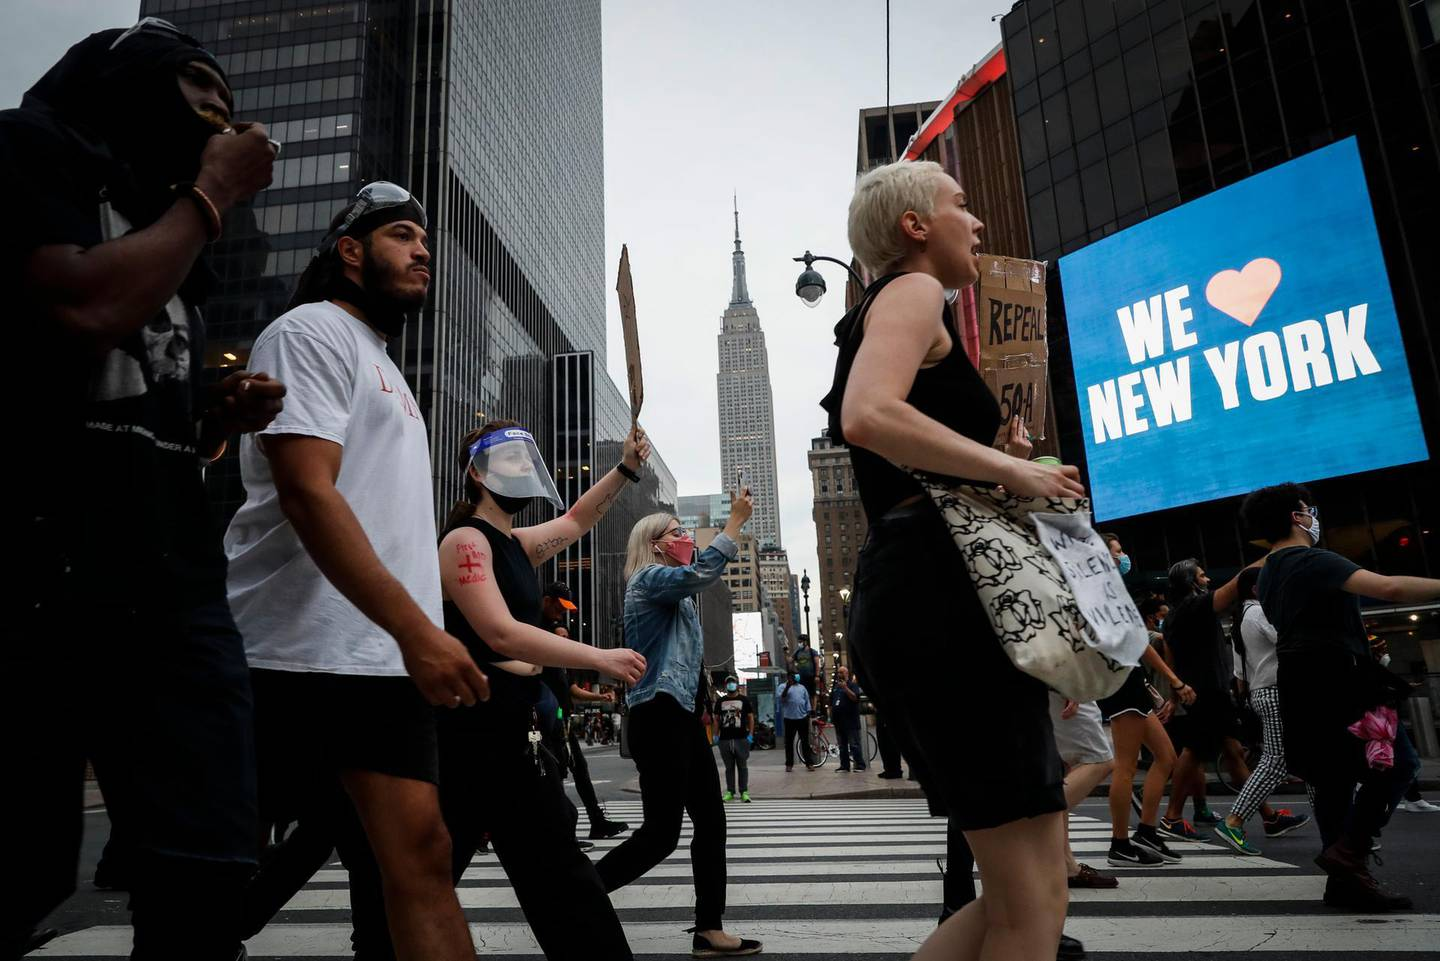 Protesters march past Madison Square Garden as the Empire State Building stands in the background, Thursday, June 4, 2020, in the Manhattan borough of New York. Protests continued following the death of George Floyd, who died after being restrained by Minneapolis police officers on May 25. (AP Photo/John Minchillo)